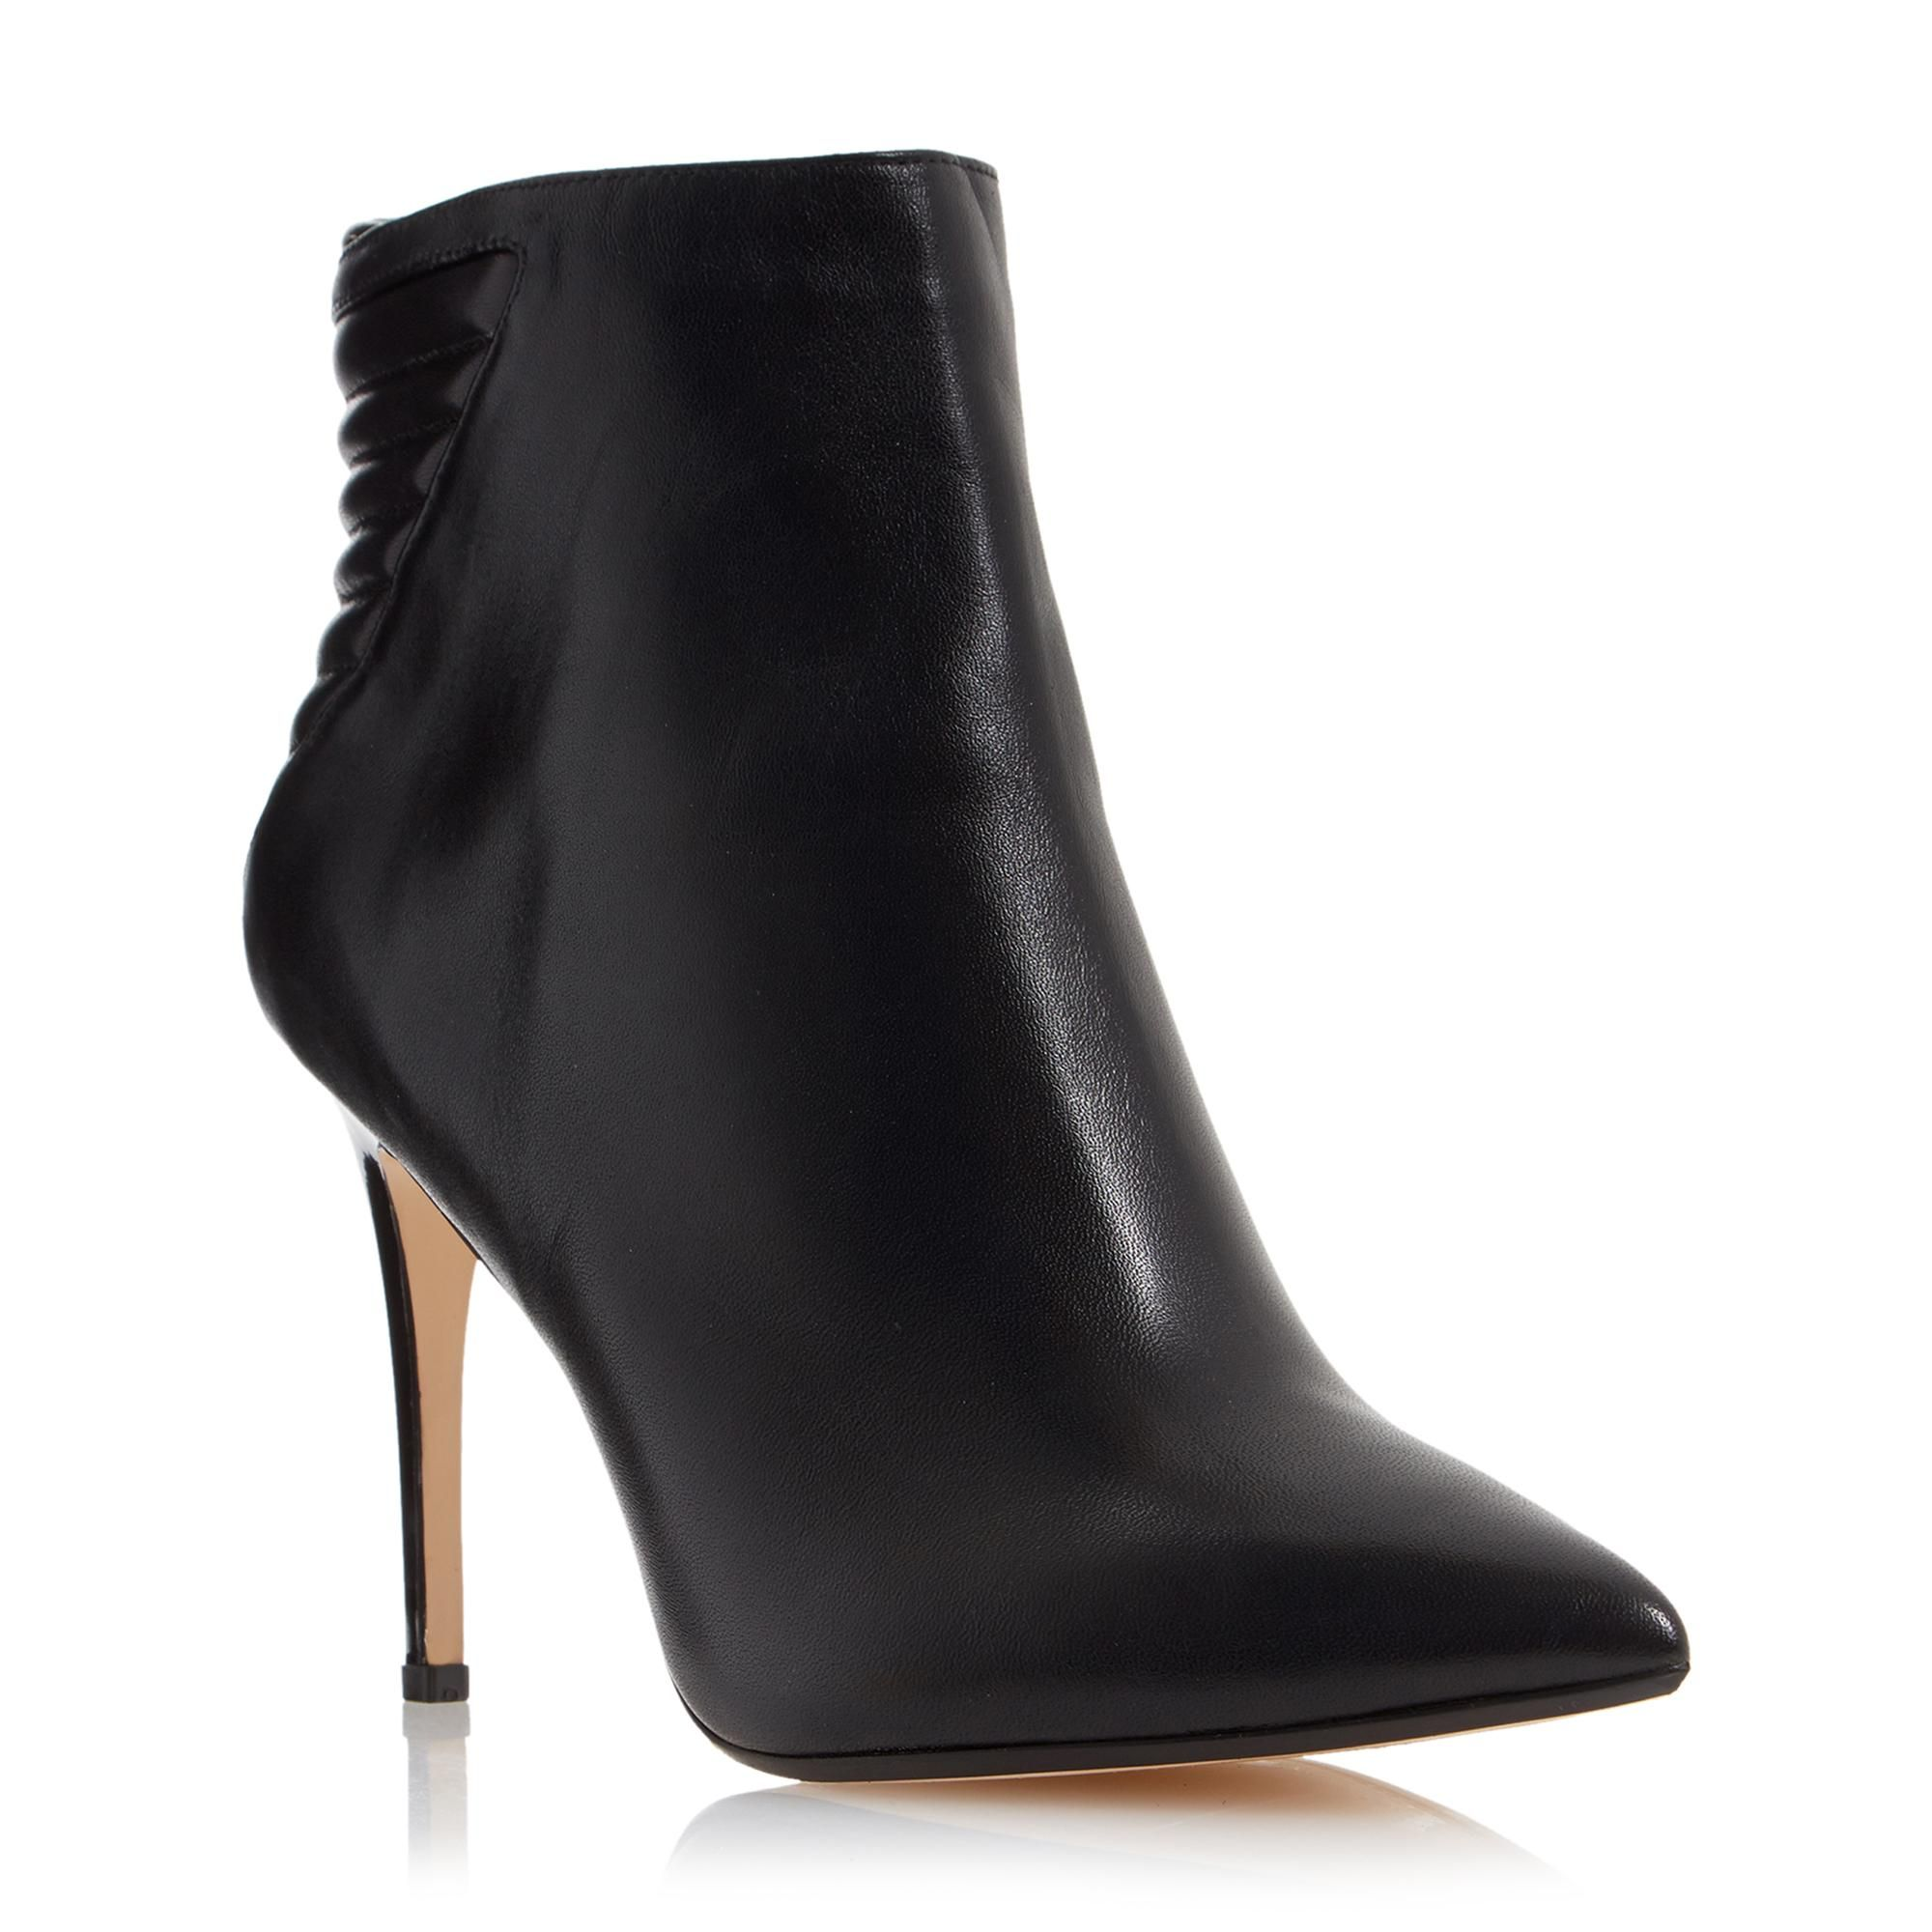 DUNE LADIES ONA - Leather Pointed Toe Heeled Ankle Boot - black | Dune Shoes Online